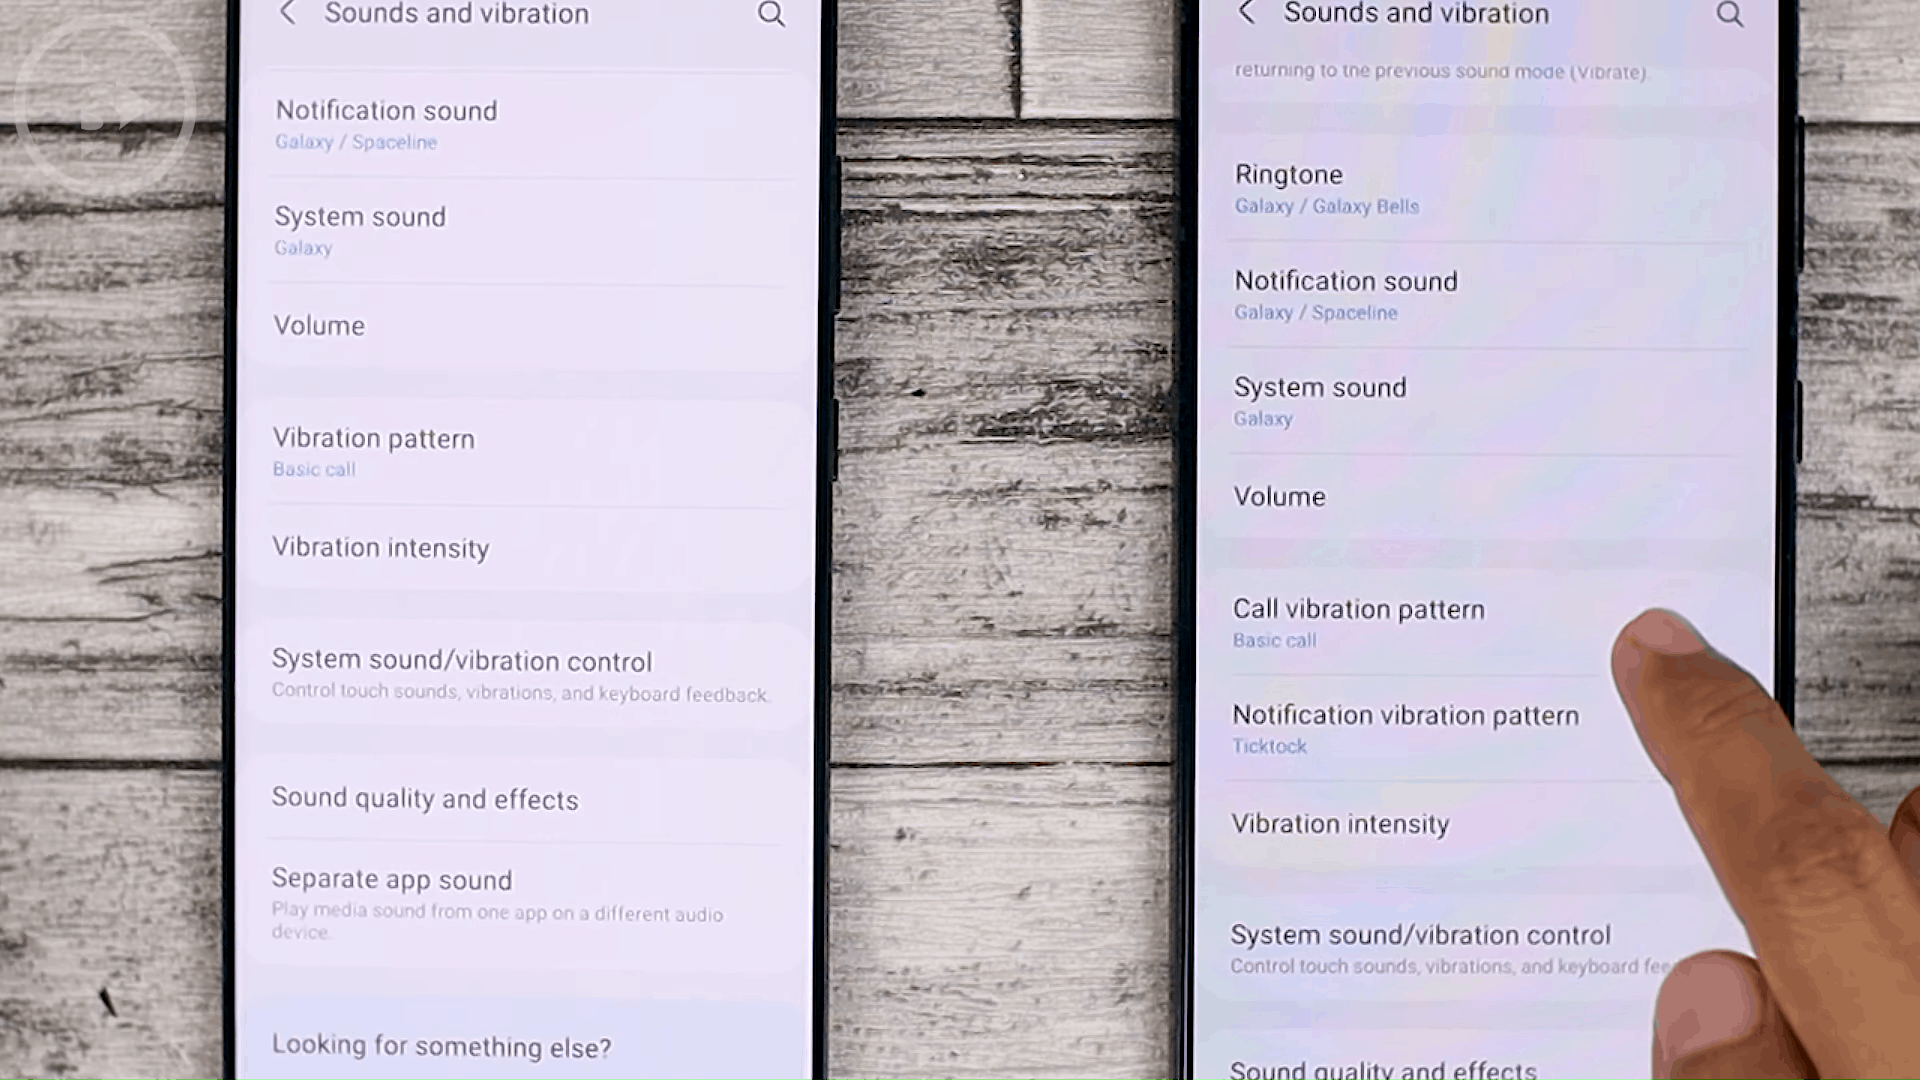 Notification Vibration Pattern - Check out the latest One UI 3.1 features on the Samsung S21 + that are not yet available on One UI 3.0 Samsung S20 + (PART 2)